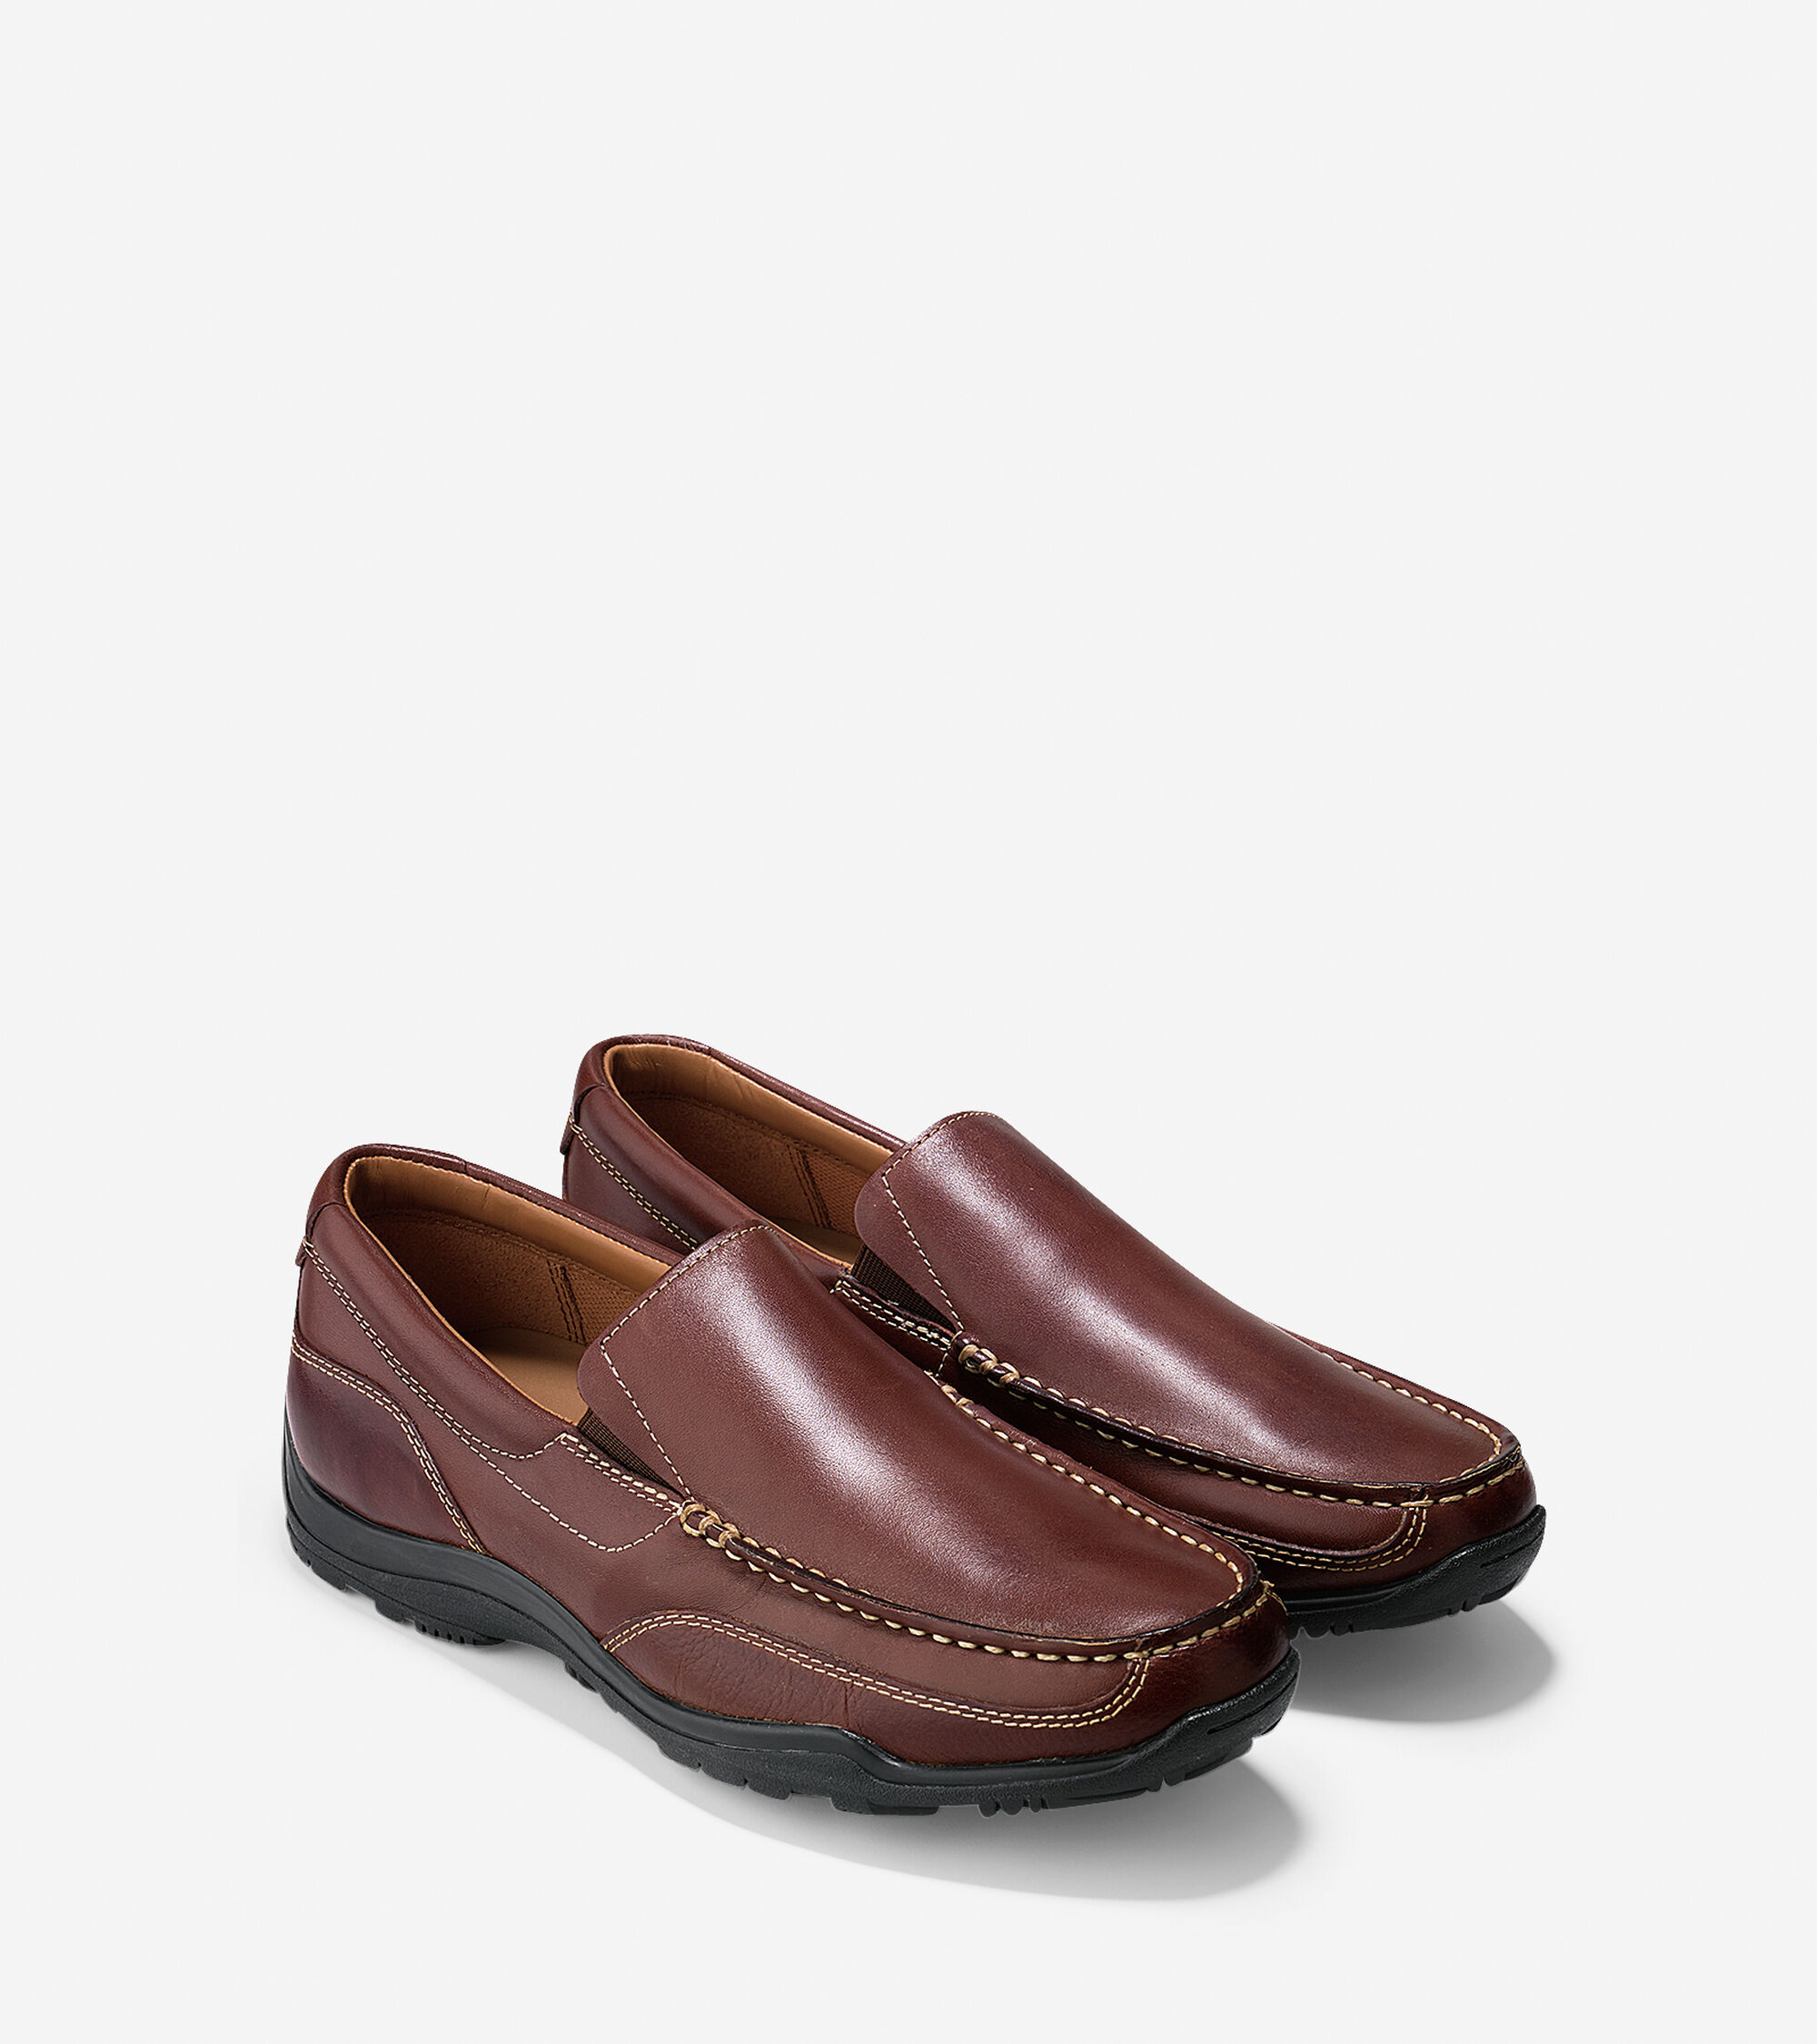 be93ea194c4 Men s Hughes Grand Venetians in Chestnut